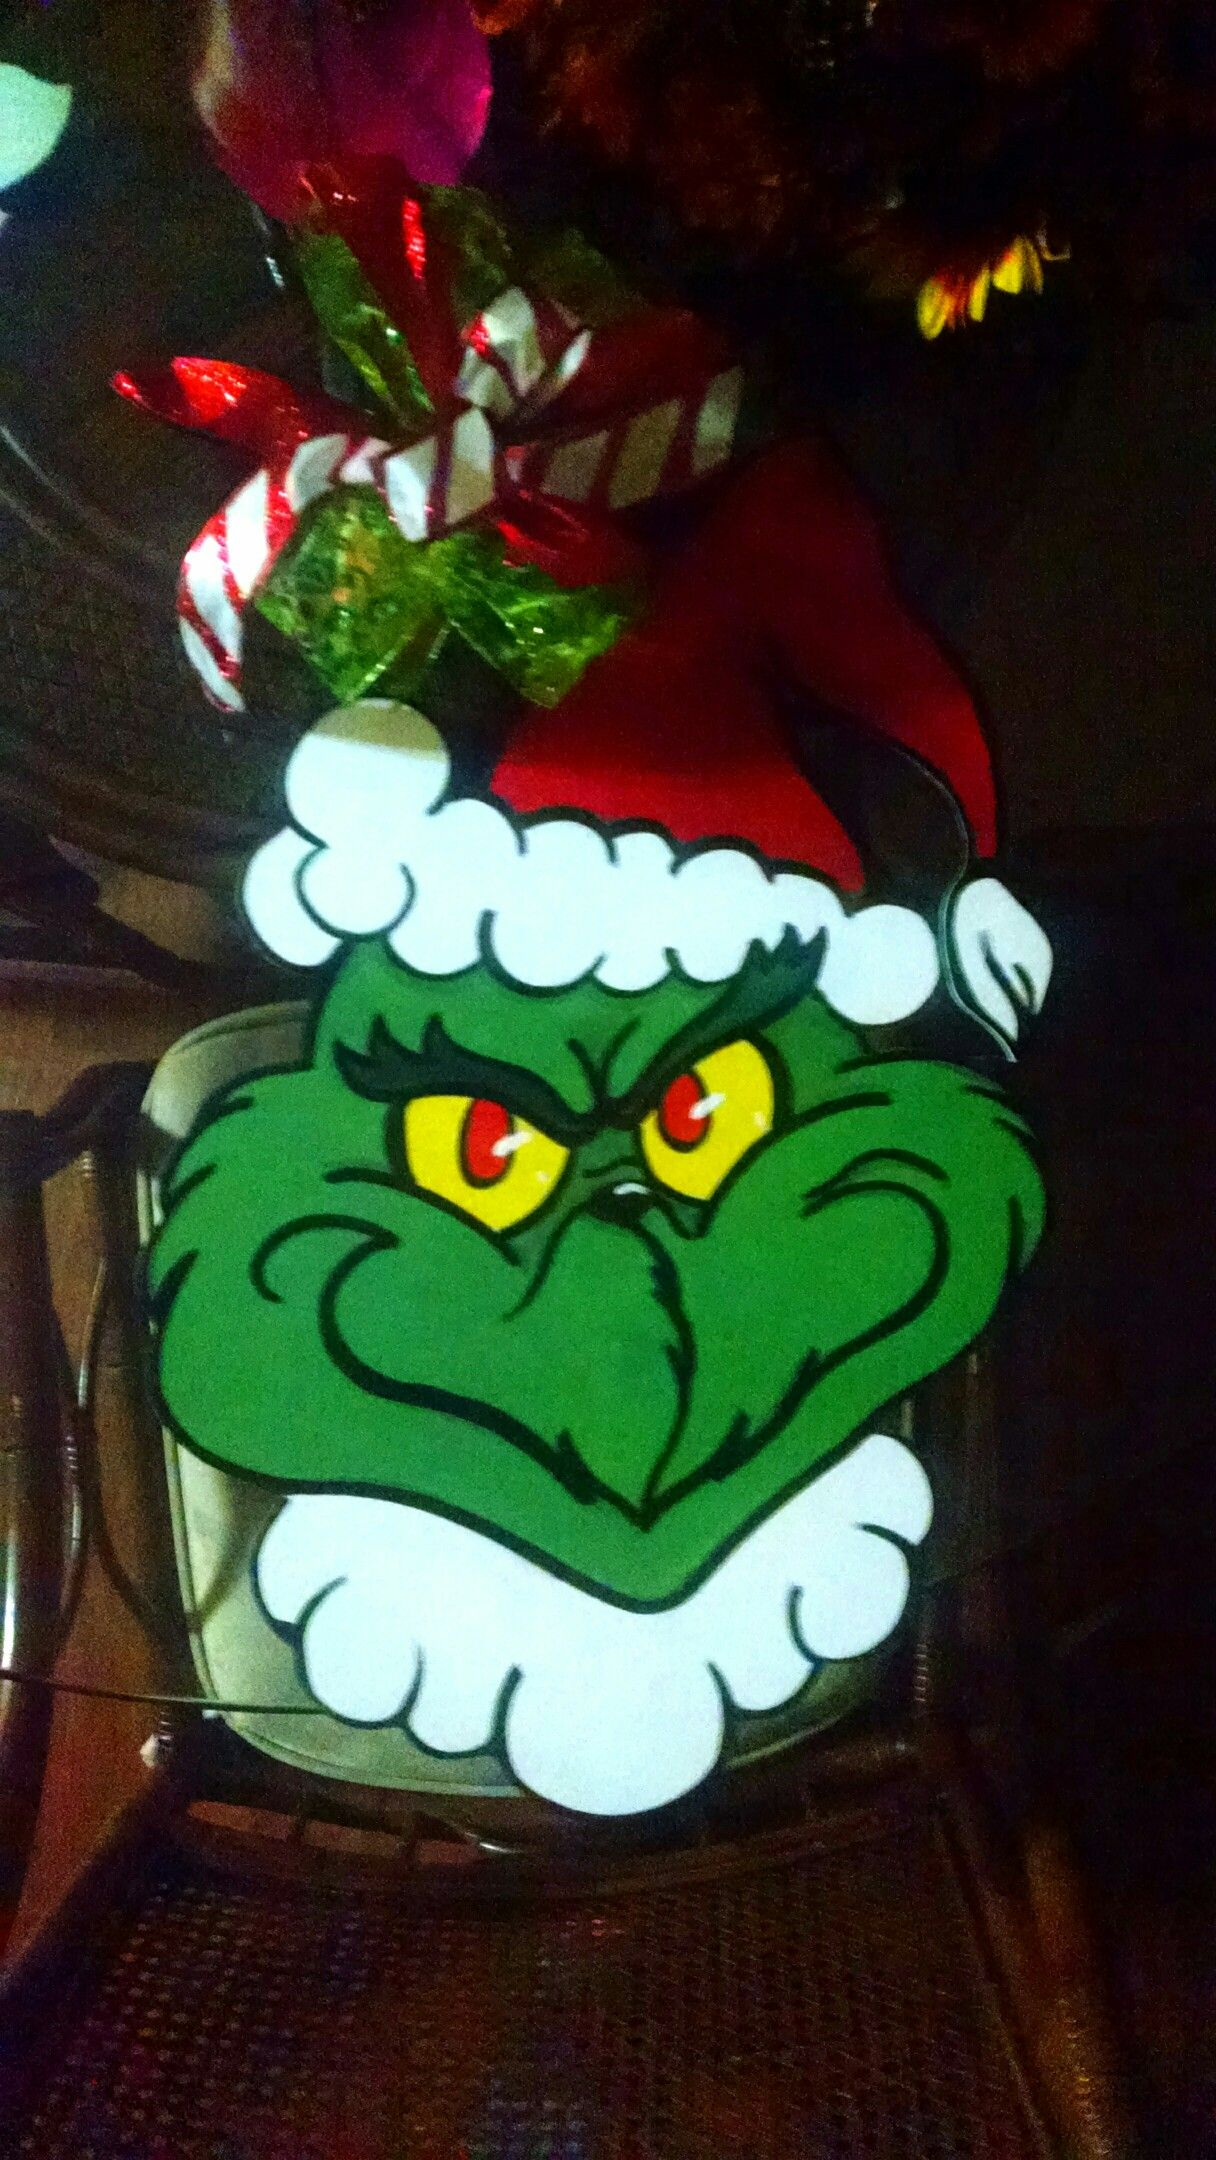 Grinch Door Hanger Christmas Whoville Grinchmas Decorations 35 Tenad9869 Gmail Com Christmas Door Hanger Christmas Crafts Christmas Decorations